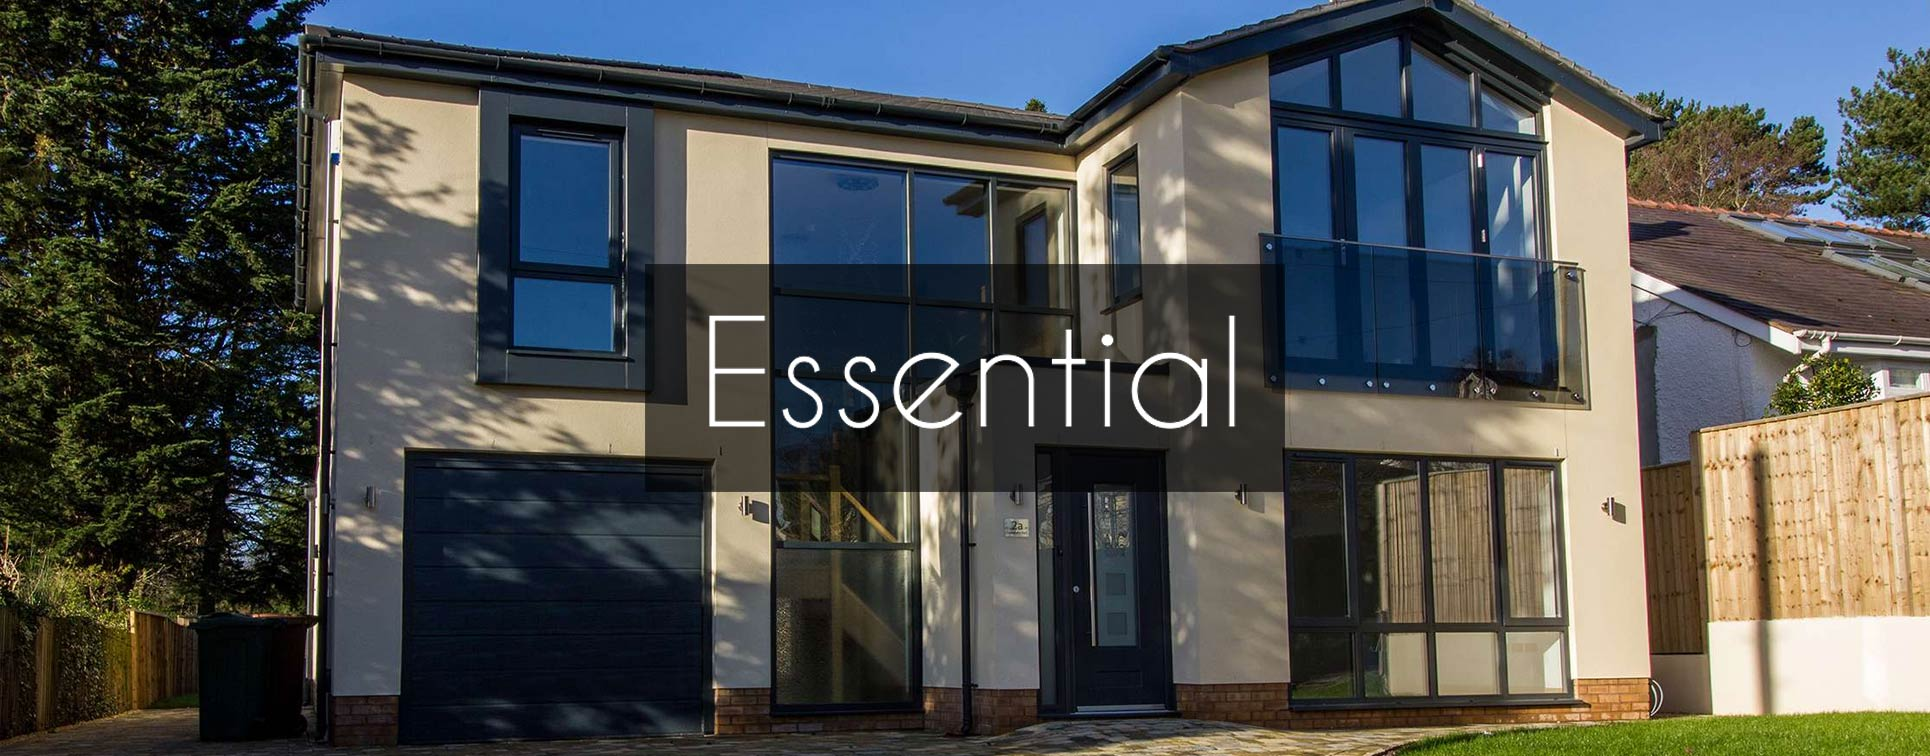 New build property featuring installation of Essential aluminium windows and bifold doors.